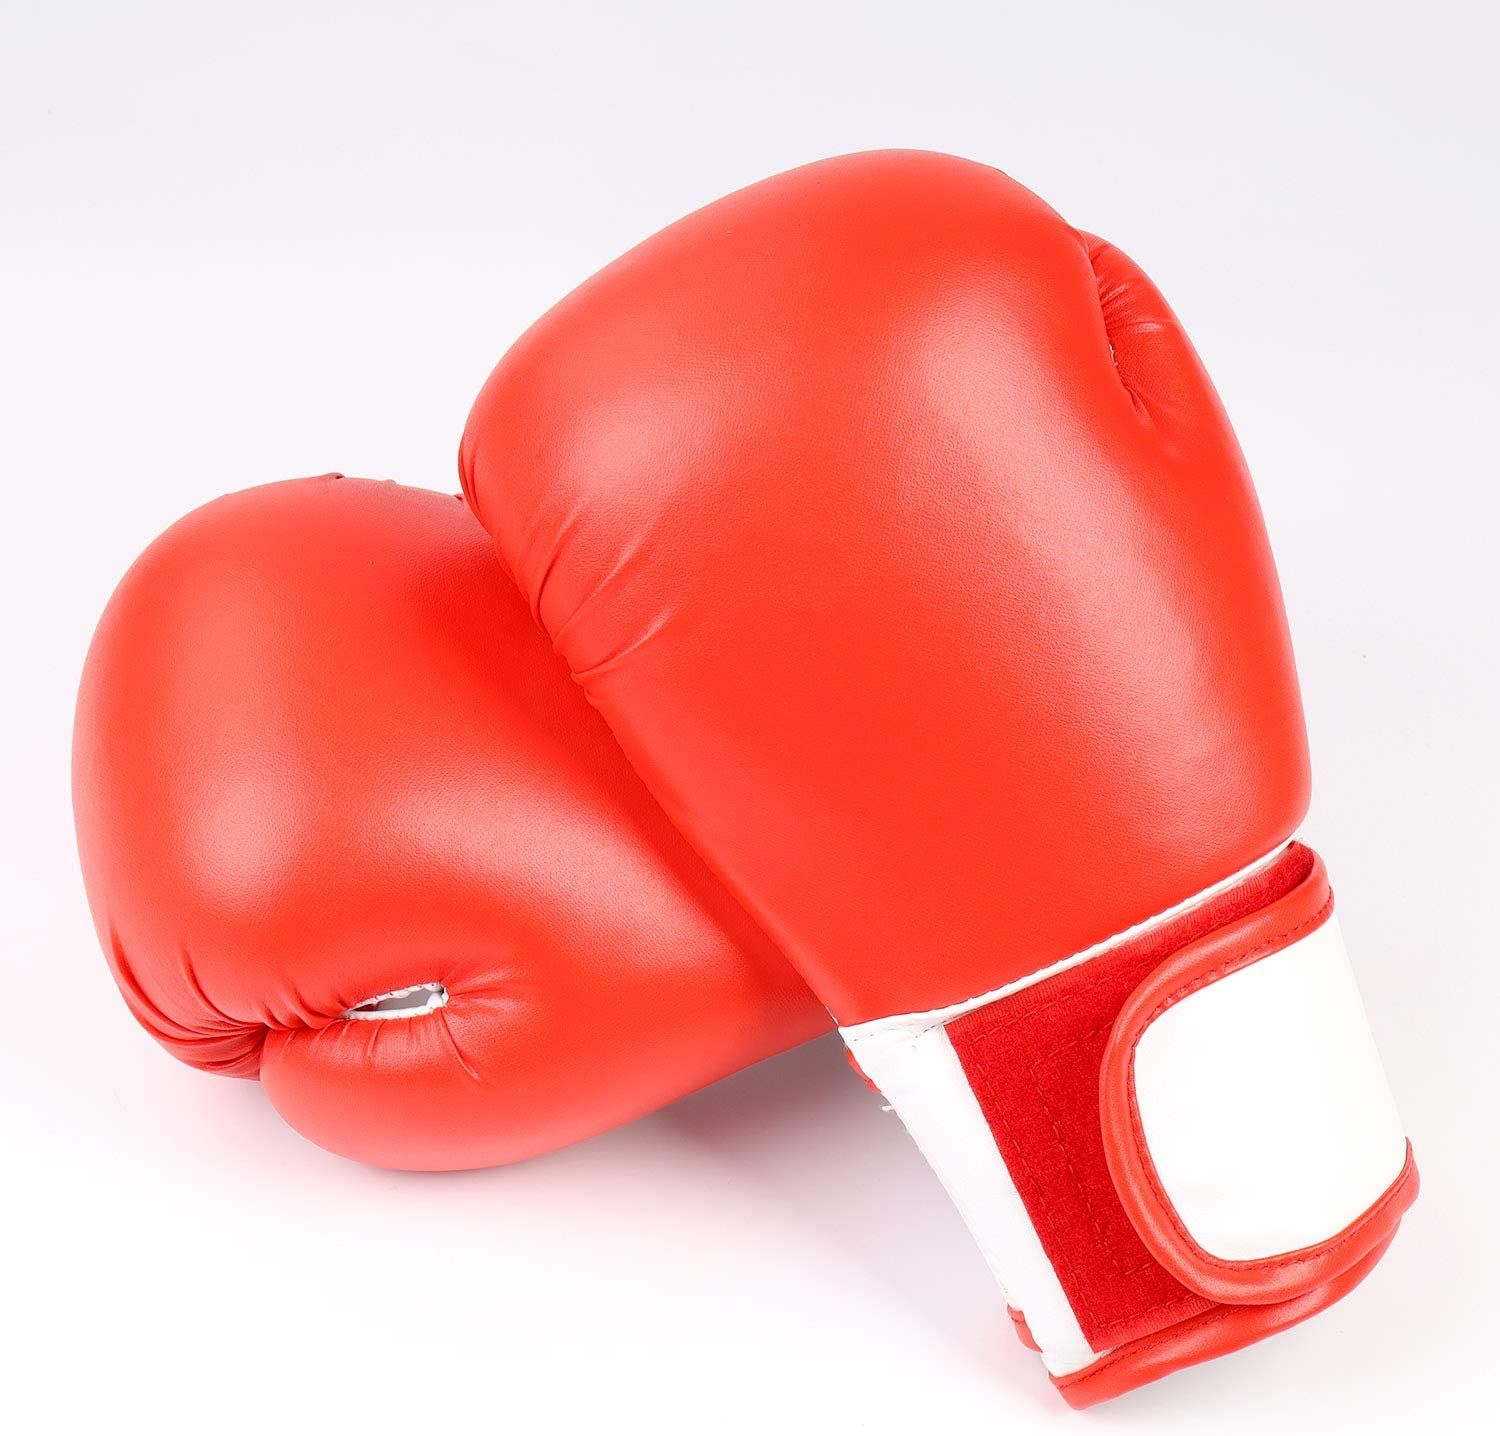 shuirunte Gloves, Boxing Gloves, Training Boxing Gloves, Fight Gloves : Sports & Outdoors